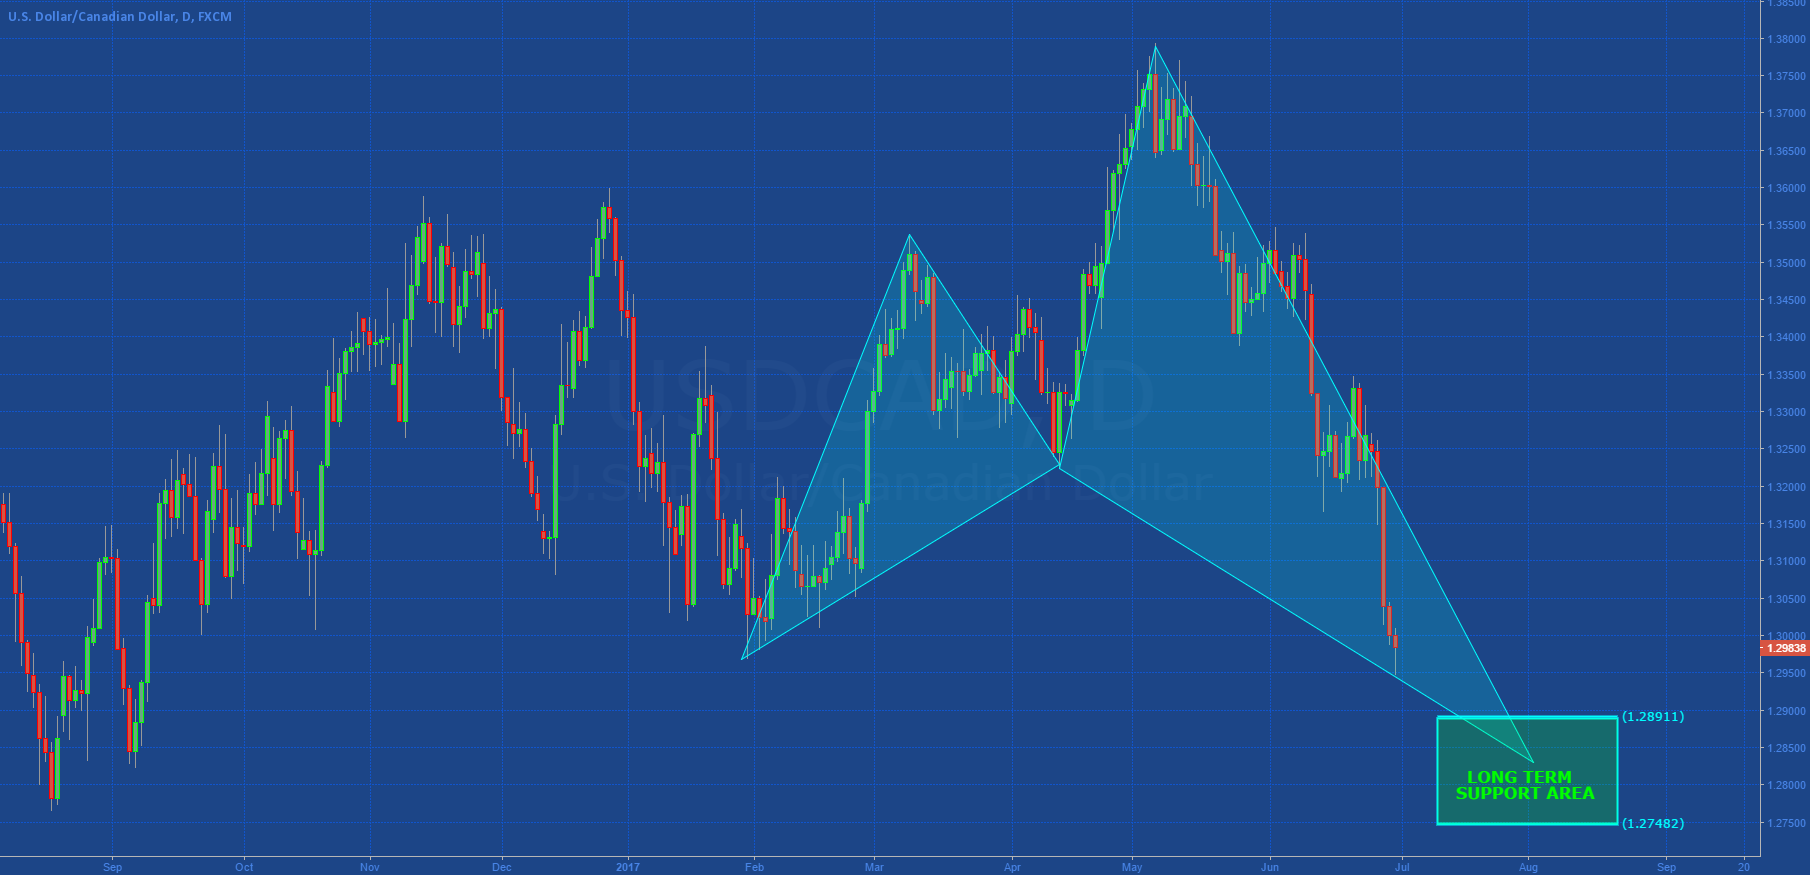 [USDCAD] LONG TERM SUPPORT AREA